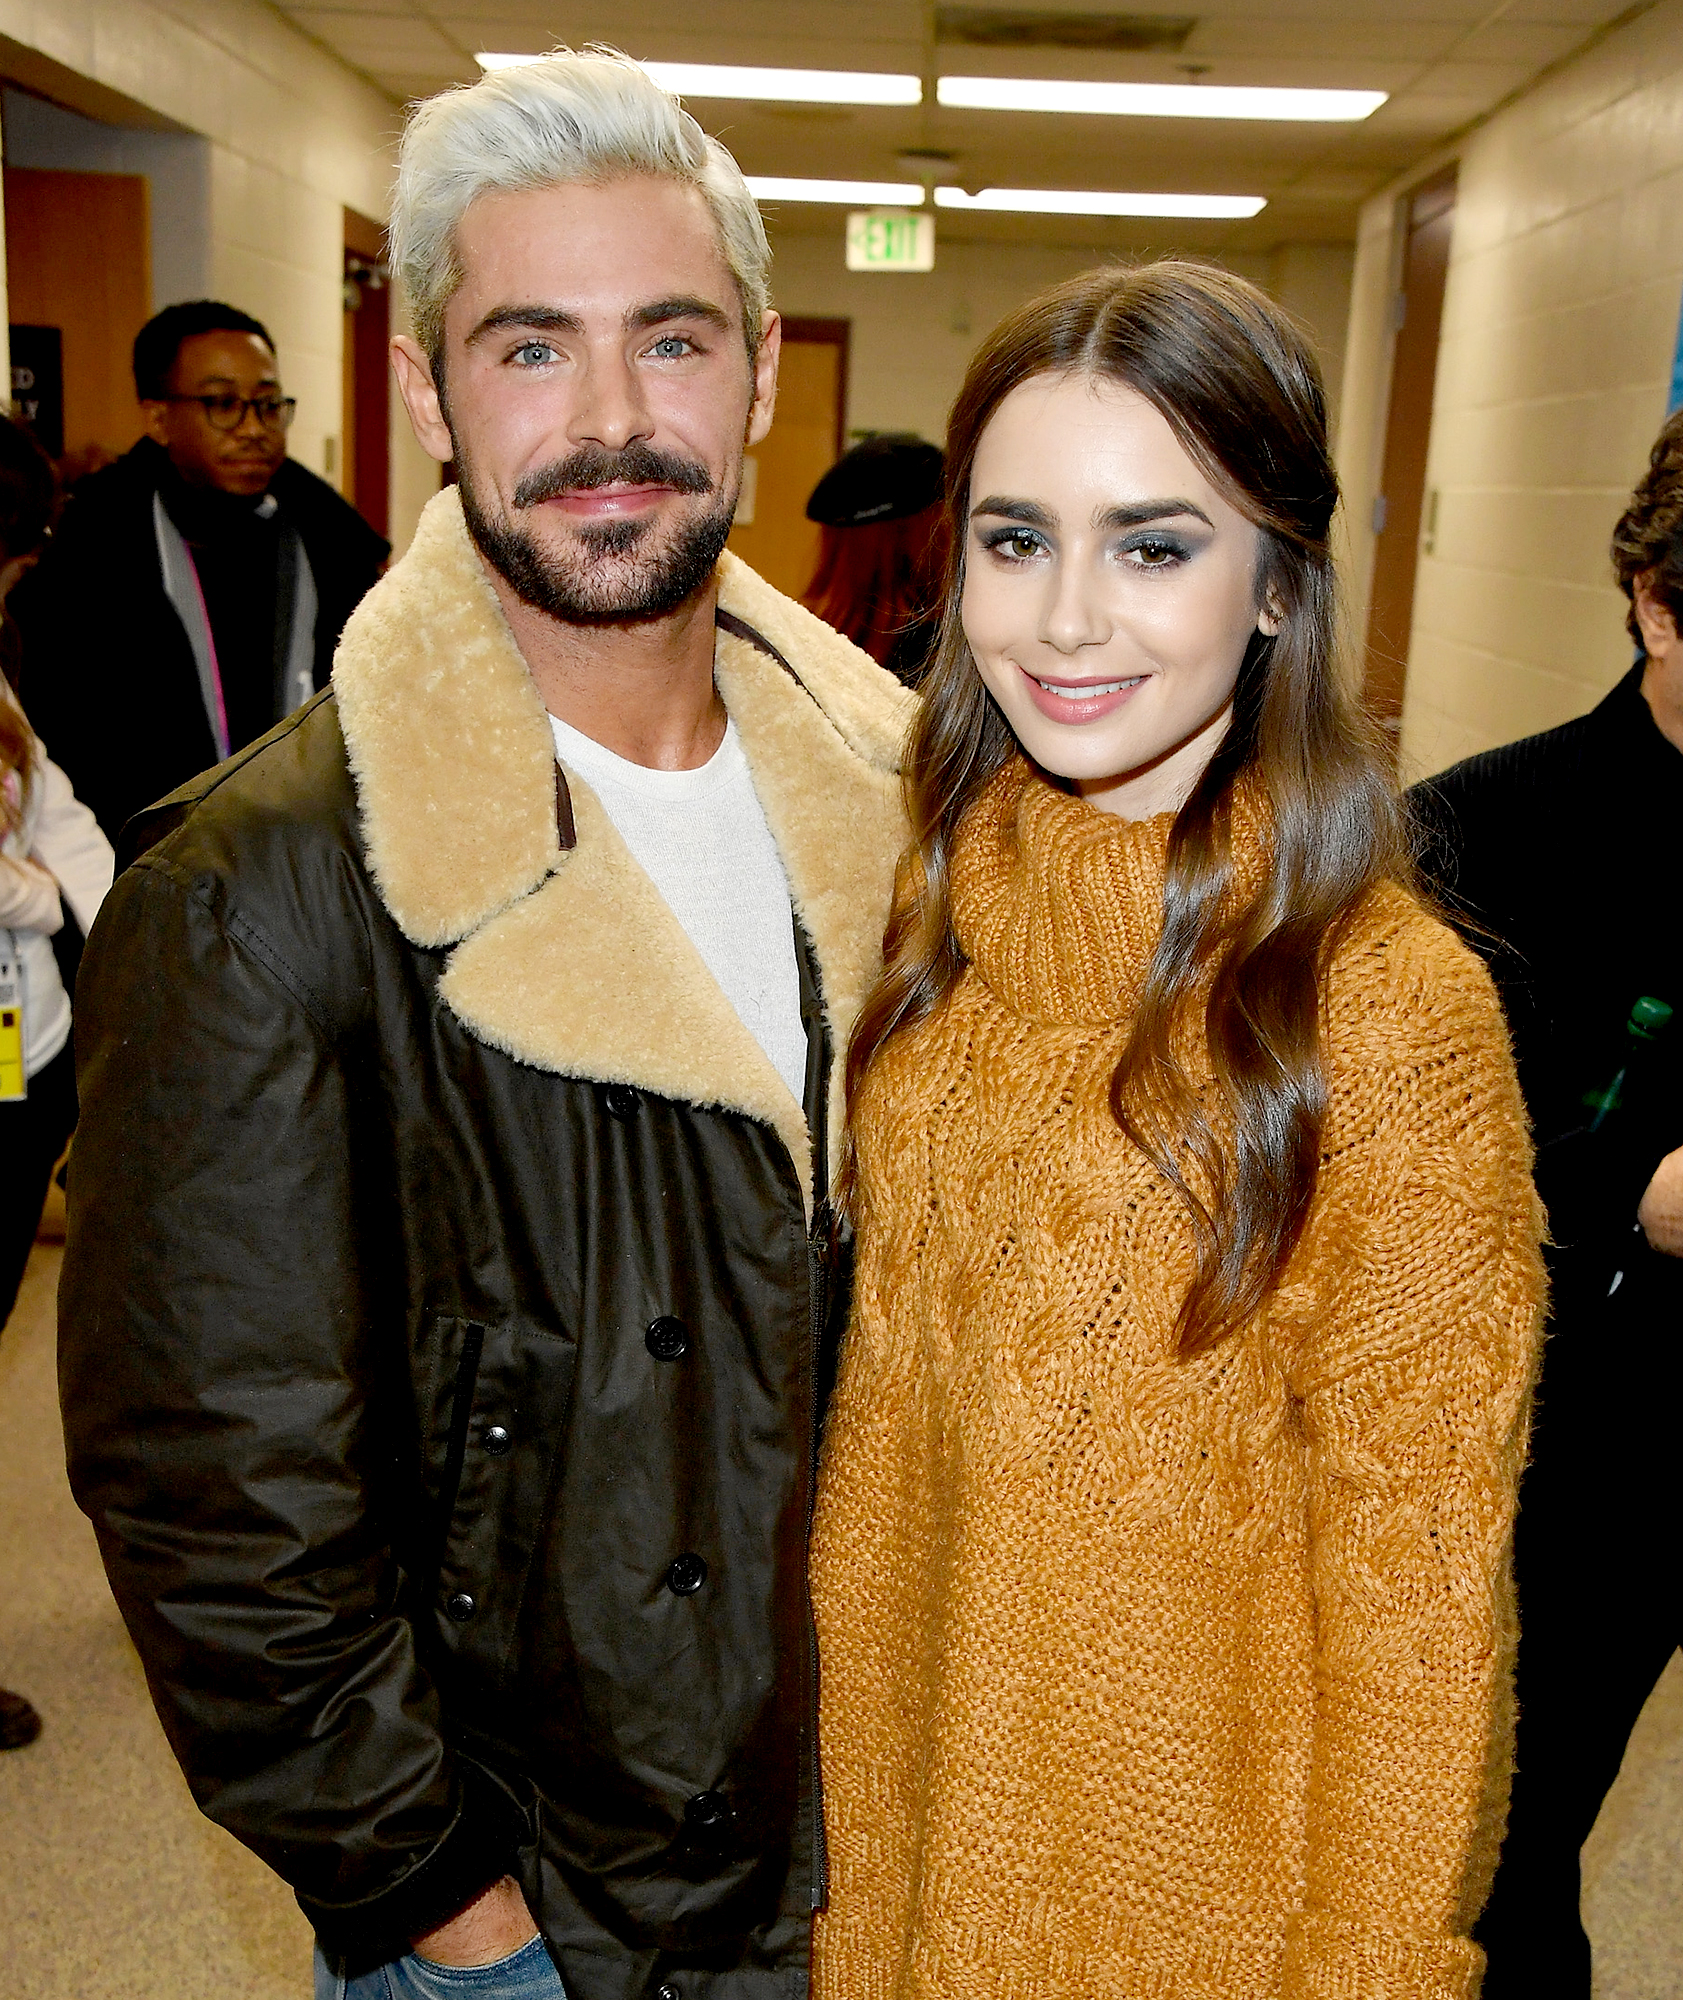 Zac Efron Usc. Who is Sarah Bro? - Meet the Swimmer